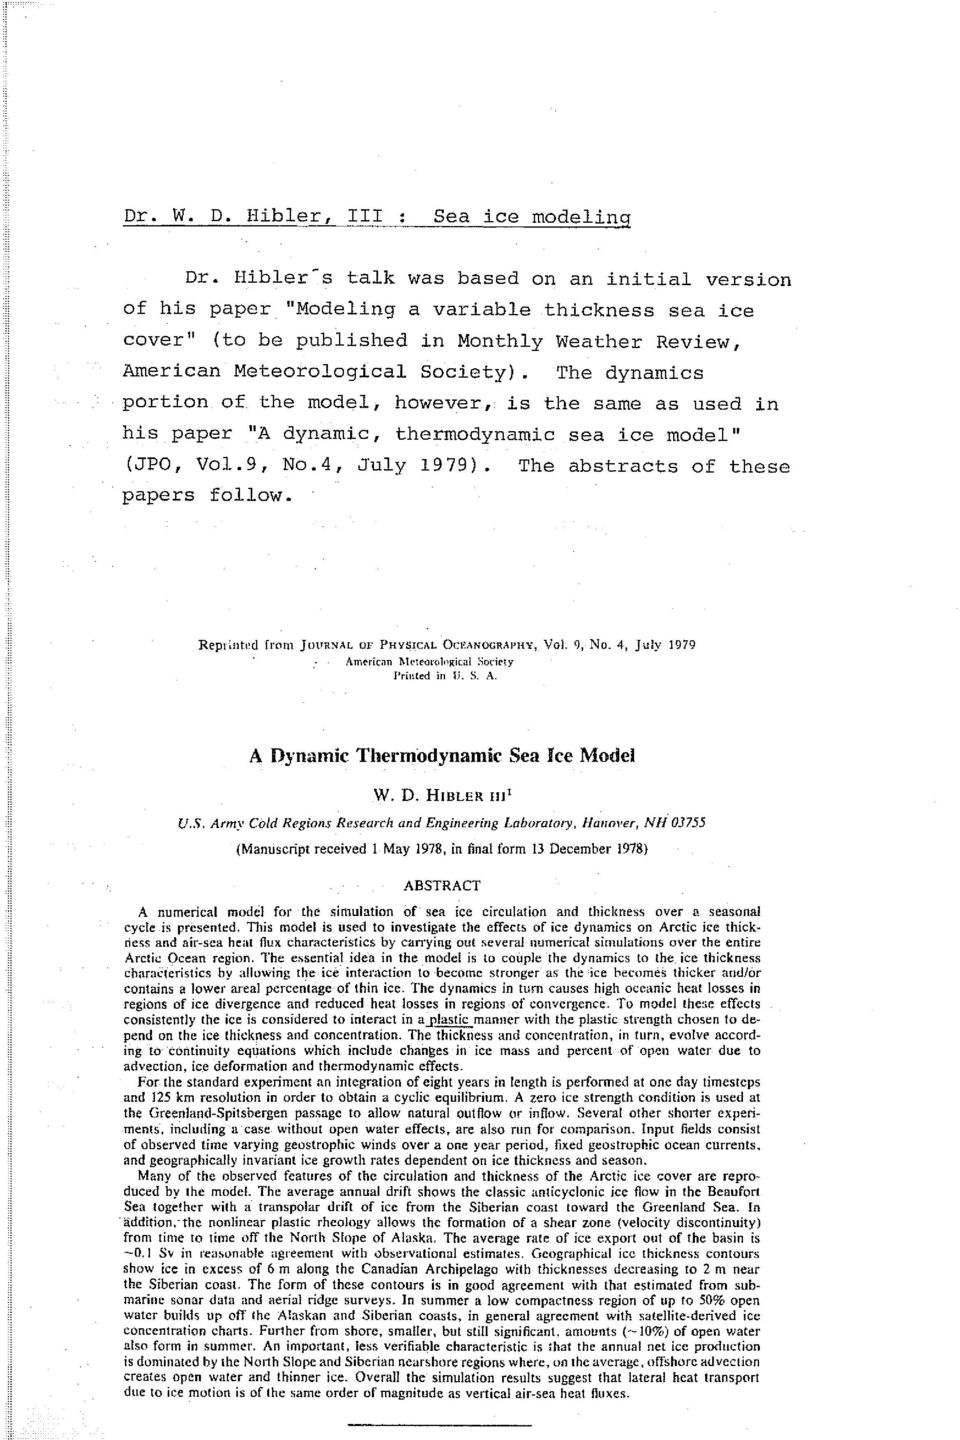 "The dynamics portion of the model, however, is the same as used in his paper ""A dynamic, thermodynamic sea ice model"" (JPO, Vol.9, No.4, July 1979). The abstracts of these papers follow."